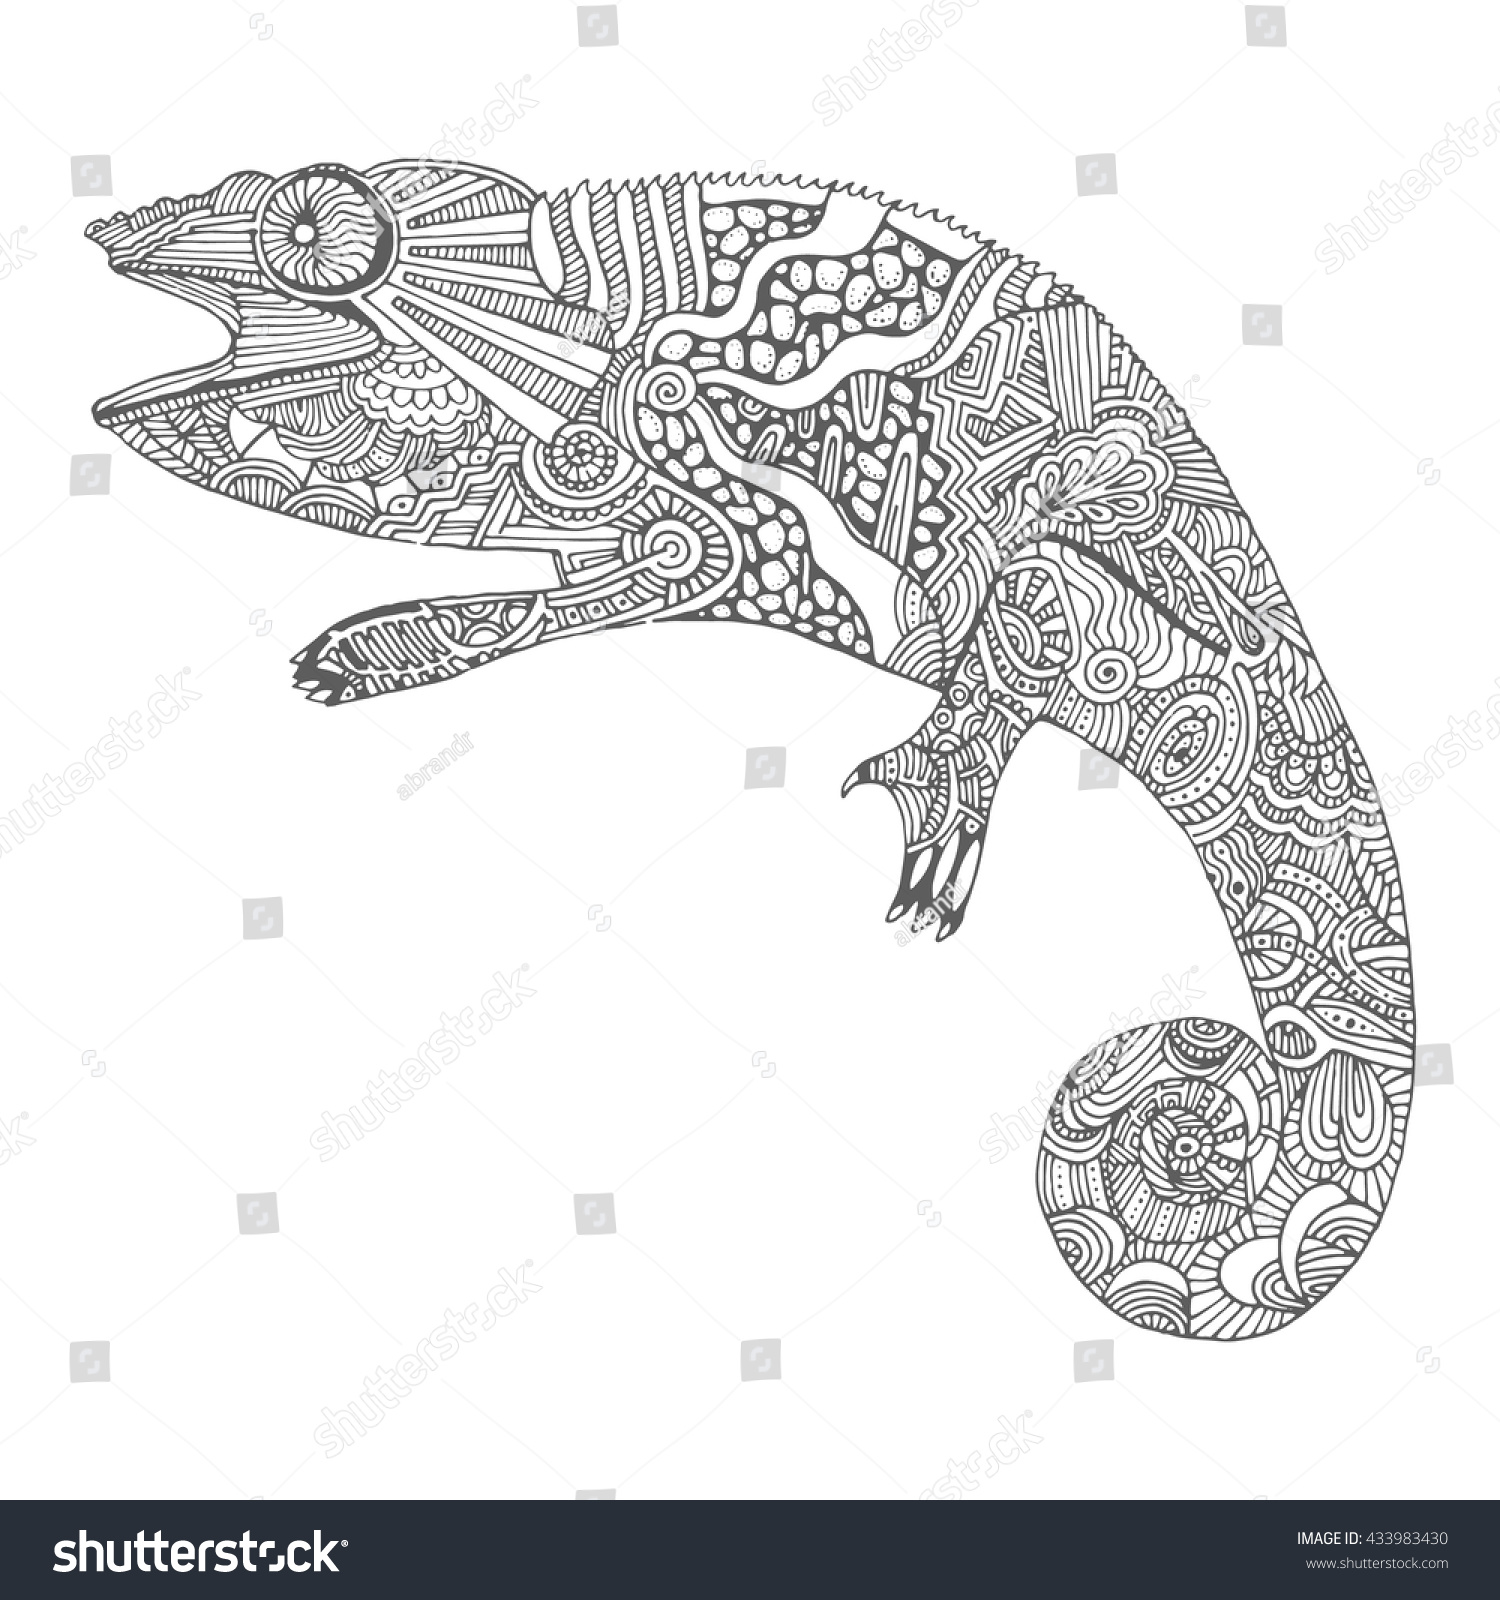 Hand Drawn Chameleon With Doodle Pattern Coloring Page Zentangle For Relaxation